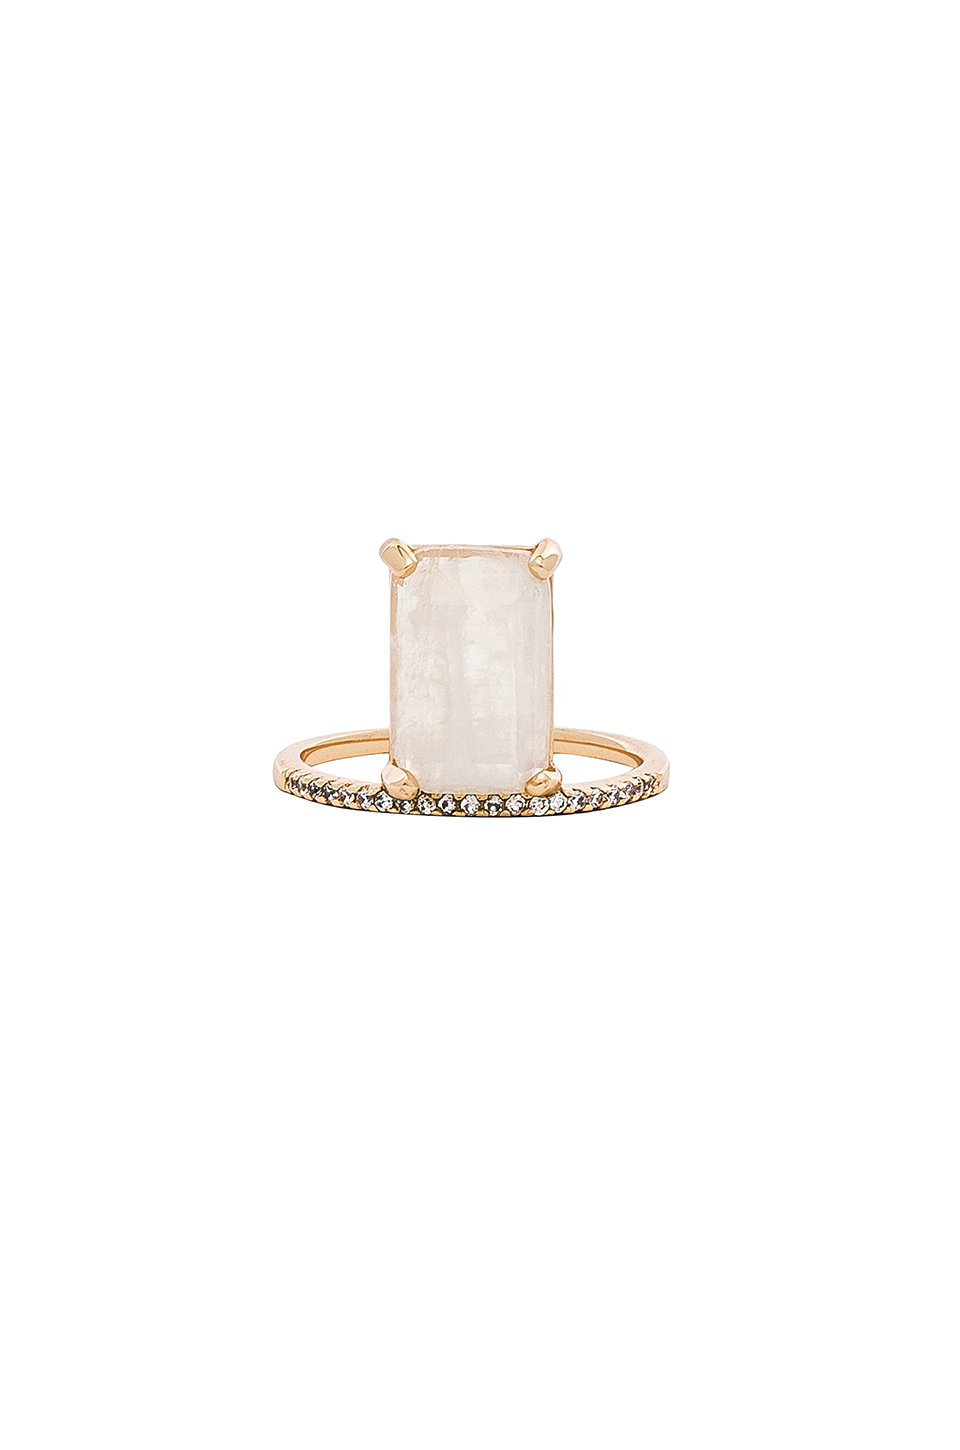 Emerald Cut Stacking Ring